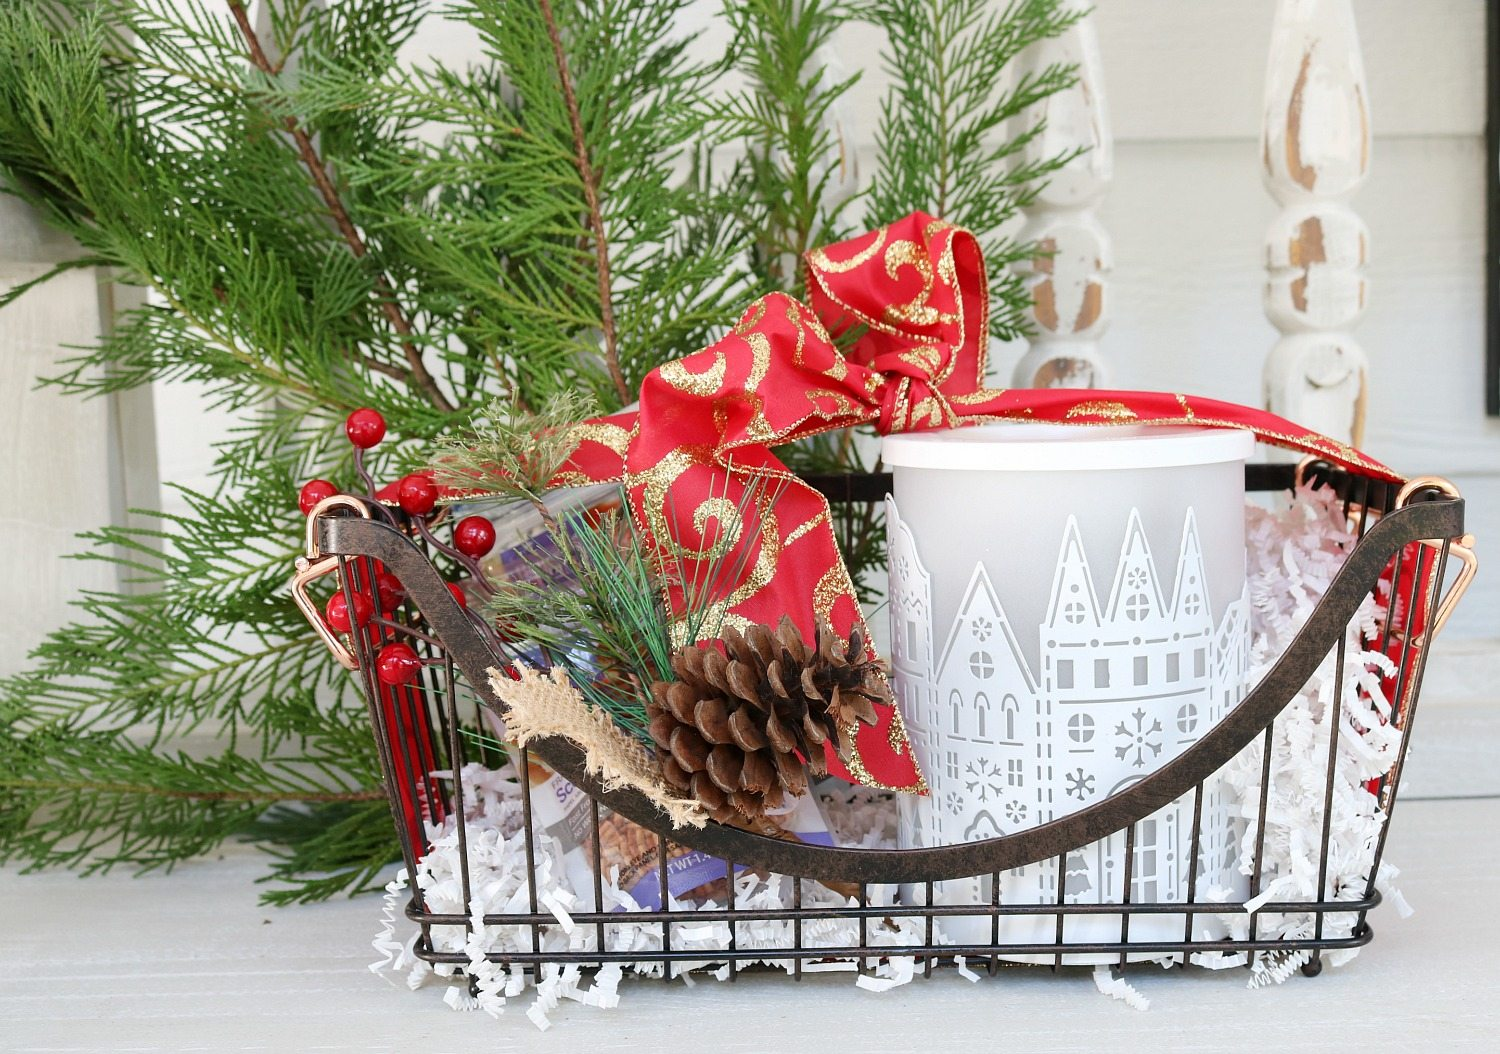 Pretty wax warm and basket gift idea